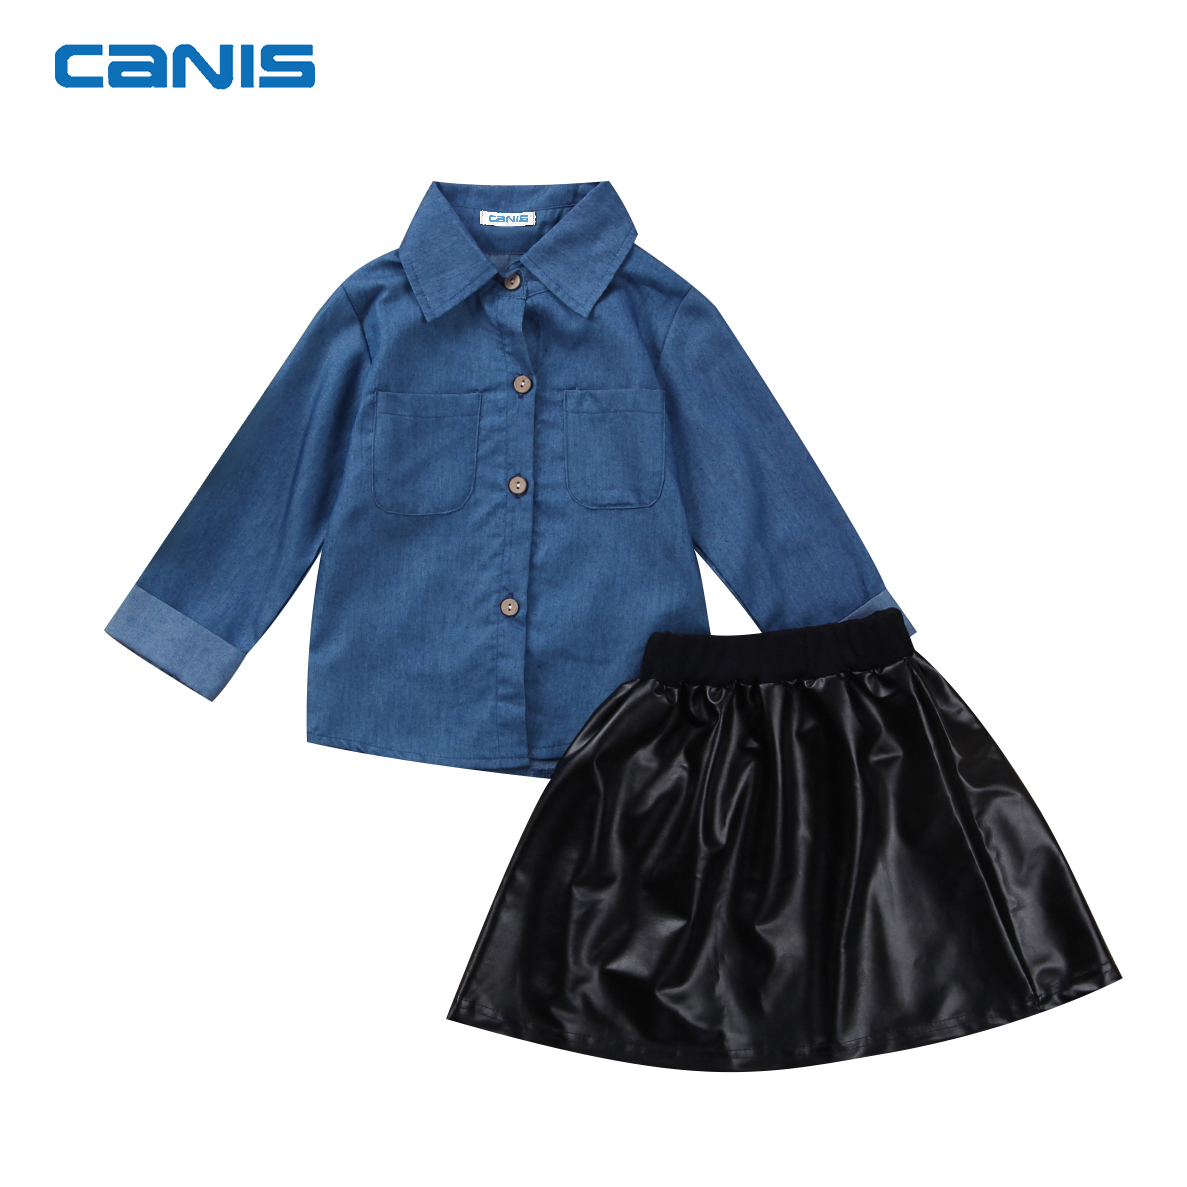 2017 Brand New Toddler Infant Child Kids Baby Girls Denim Top PU Leather Skirt 2Pcs Set Princess Tulle Tutu Skirts Outfits 1-5T new hot sail 2015 children girl chiffon top skirt set baby pettiskirt tutu top girls tutu skirt free shipping